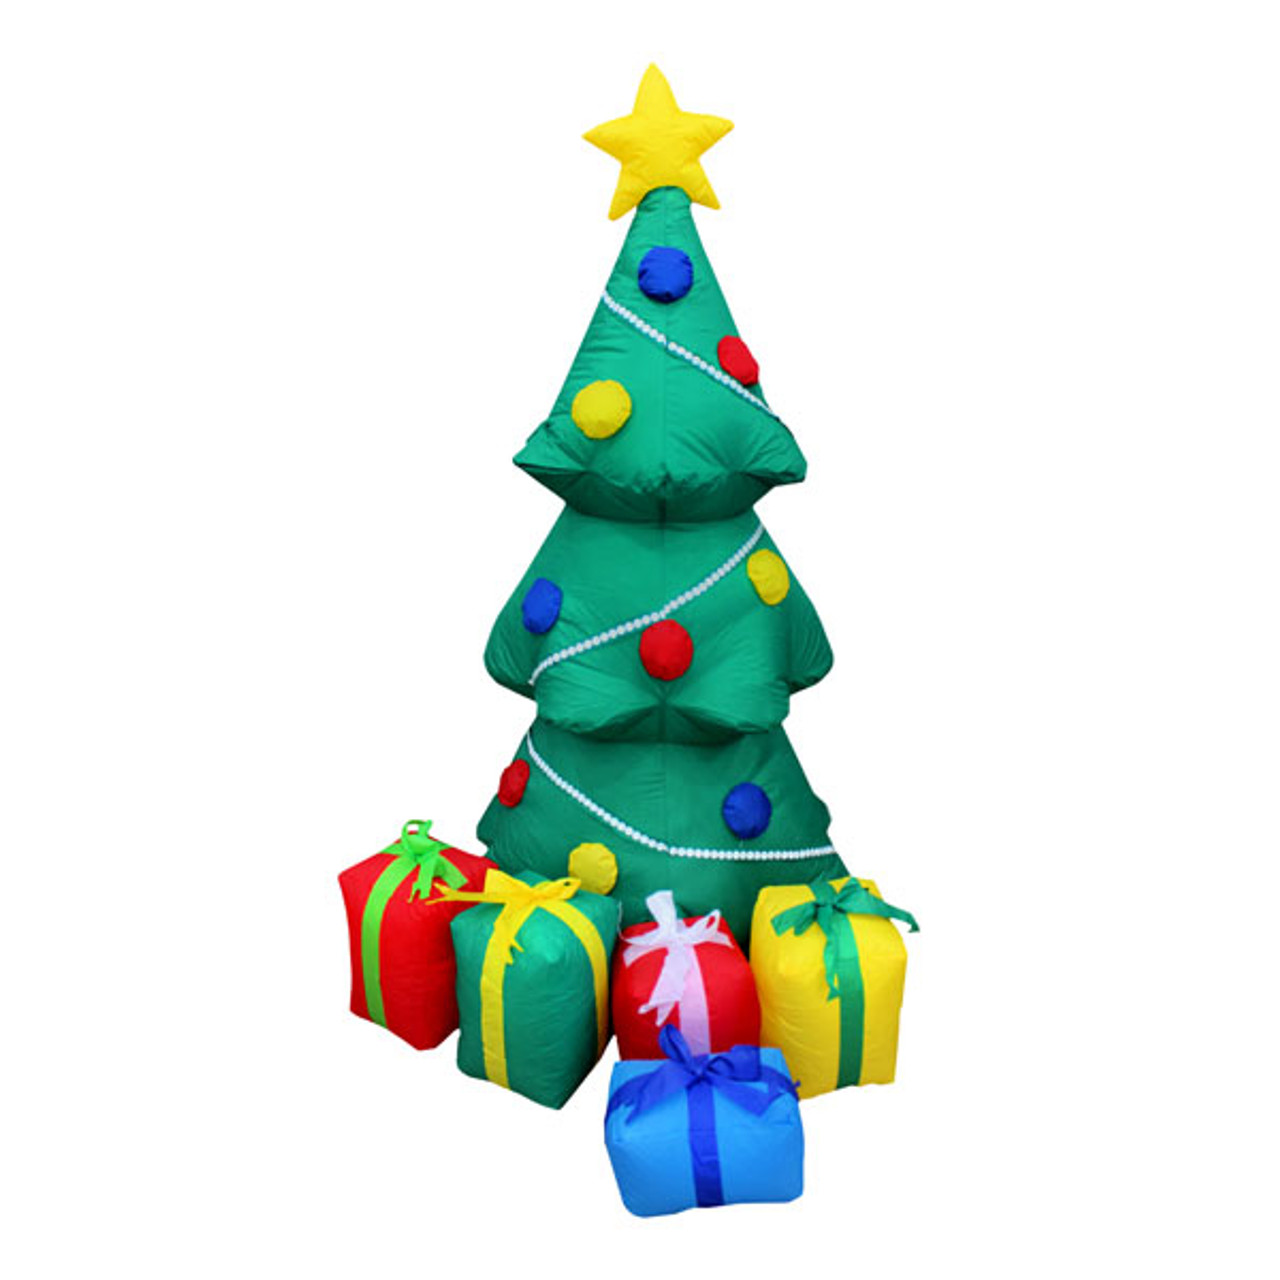 4ft Christmas Tree with Presents Inflatable Yard Decoration 100CI715